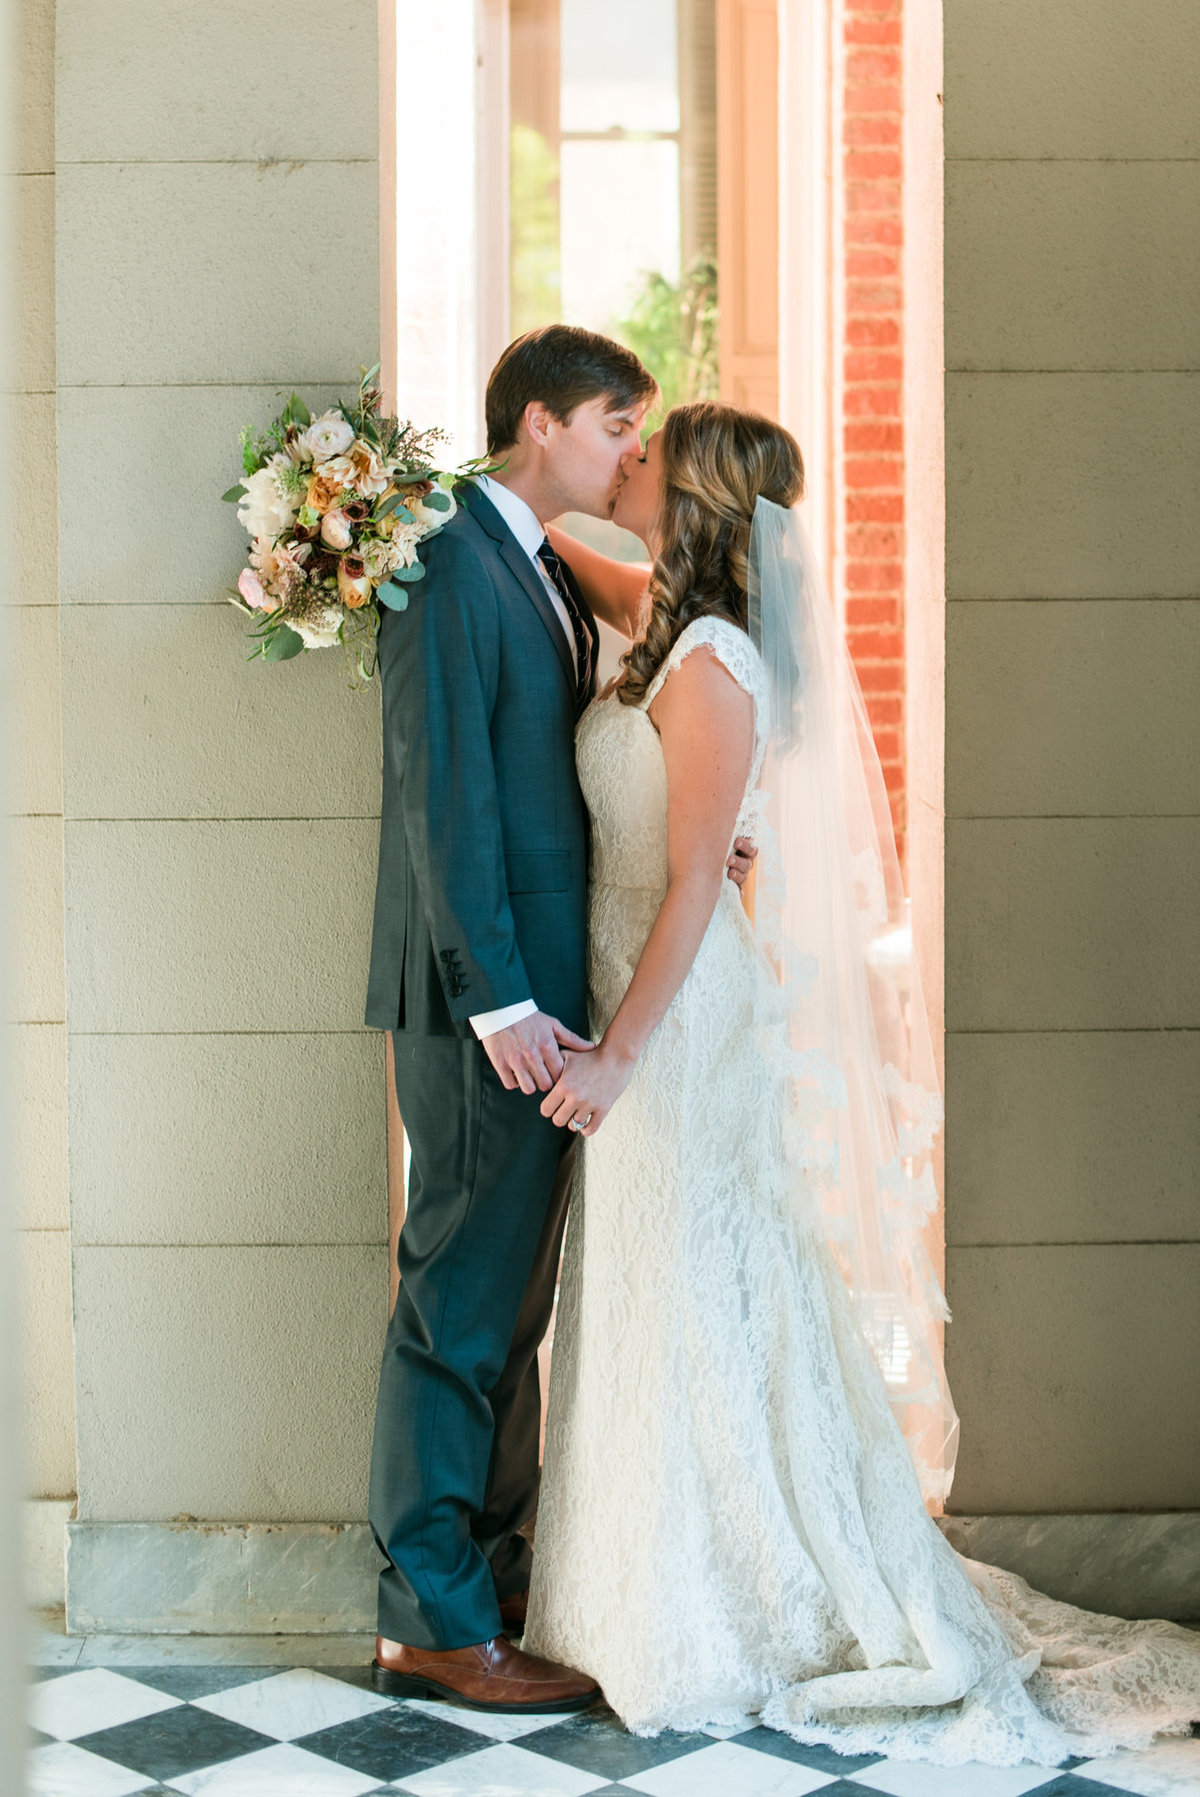 woodruff fontaine wedding photo8318